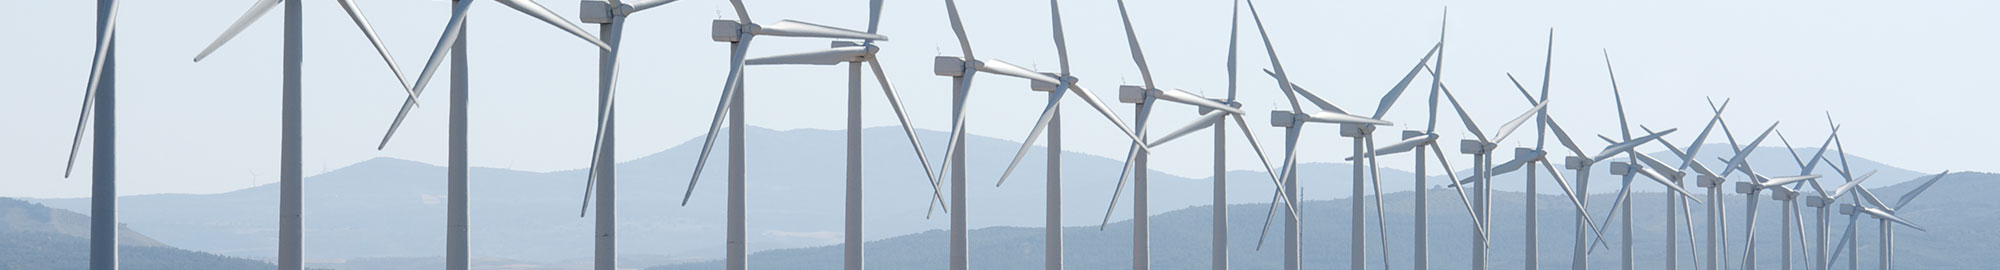 renewable simulation cfd wind energy